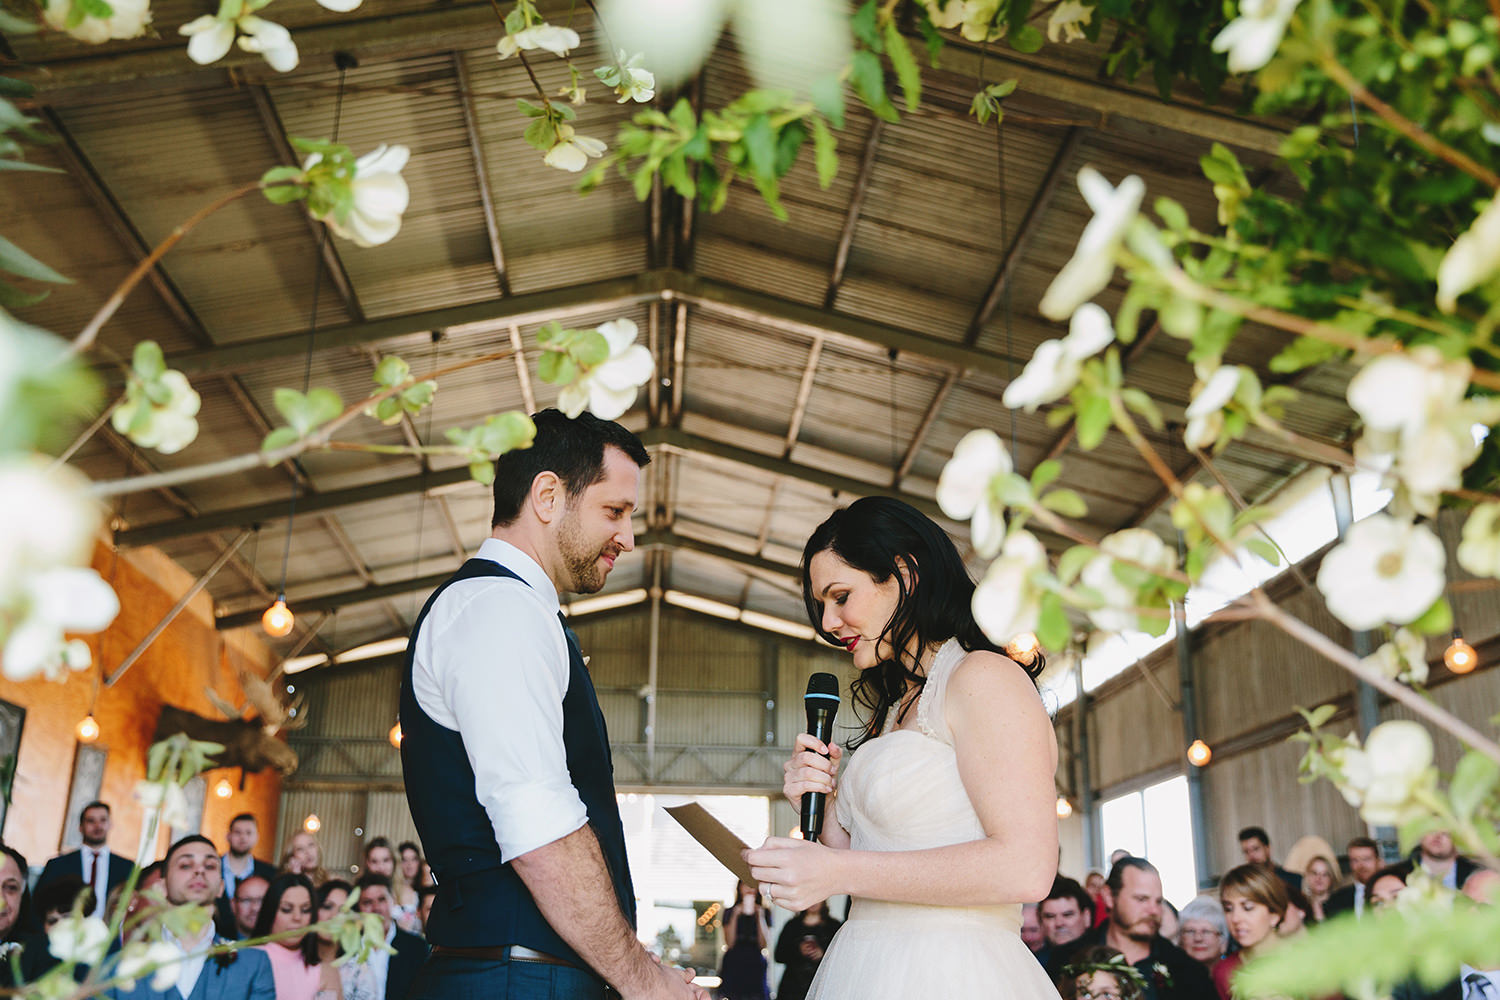 Melbourne_Winery_Wedding_Chris_Merrily103.JPG